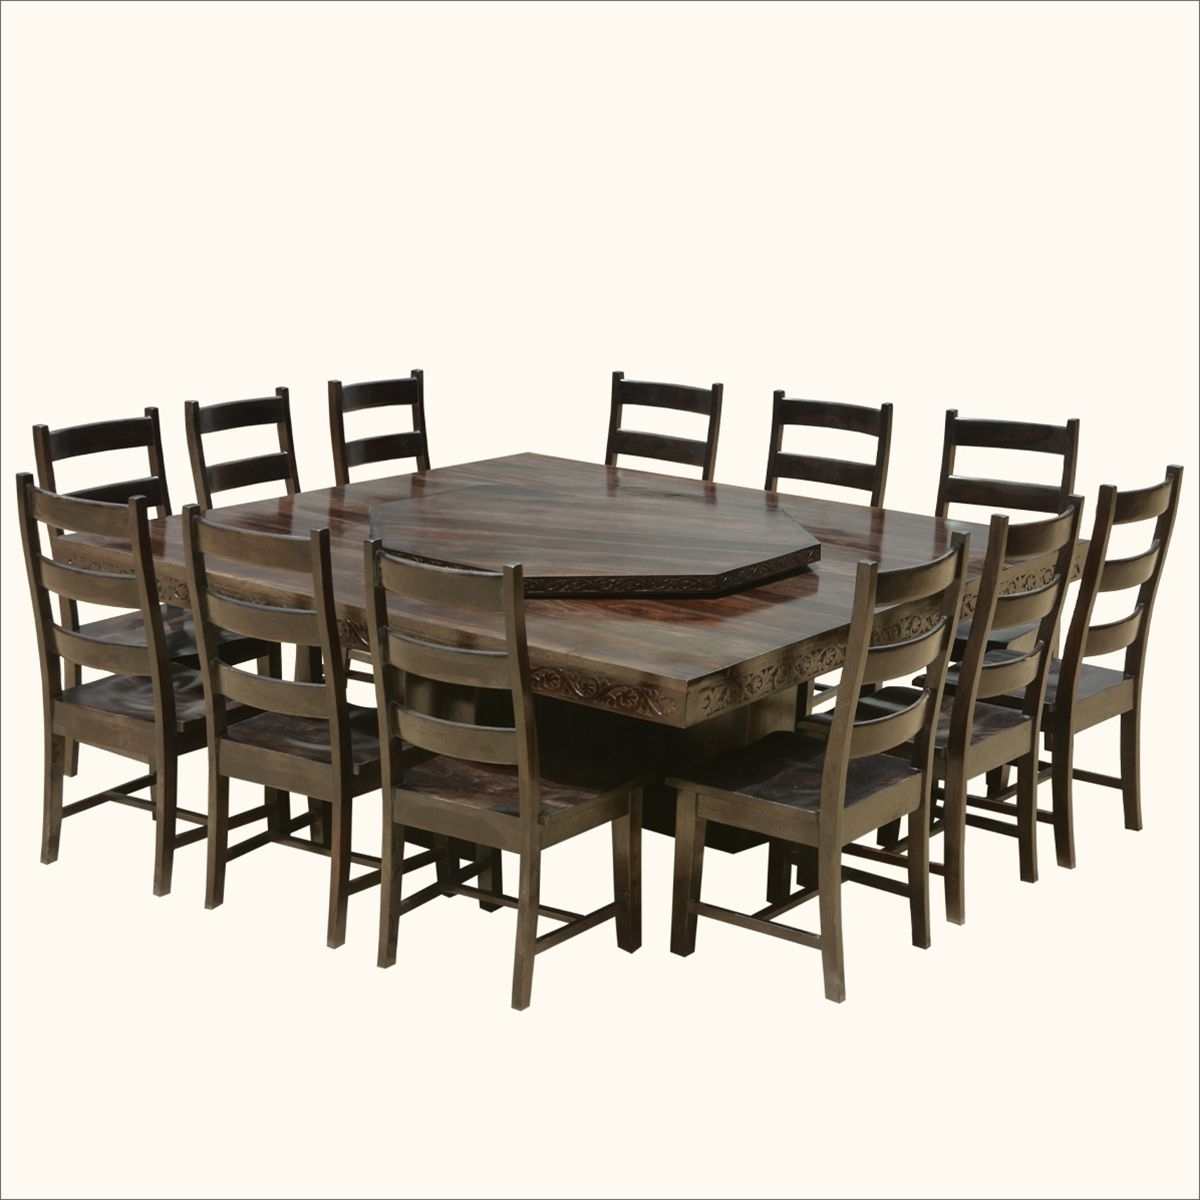 Dining Tables Chairs With Regard To Famous Modern Pioneer Solid Wood Lazy Susan Pedestal Dining Table & Chair (View 11 of 25)